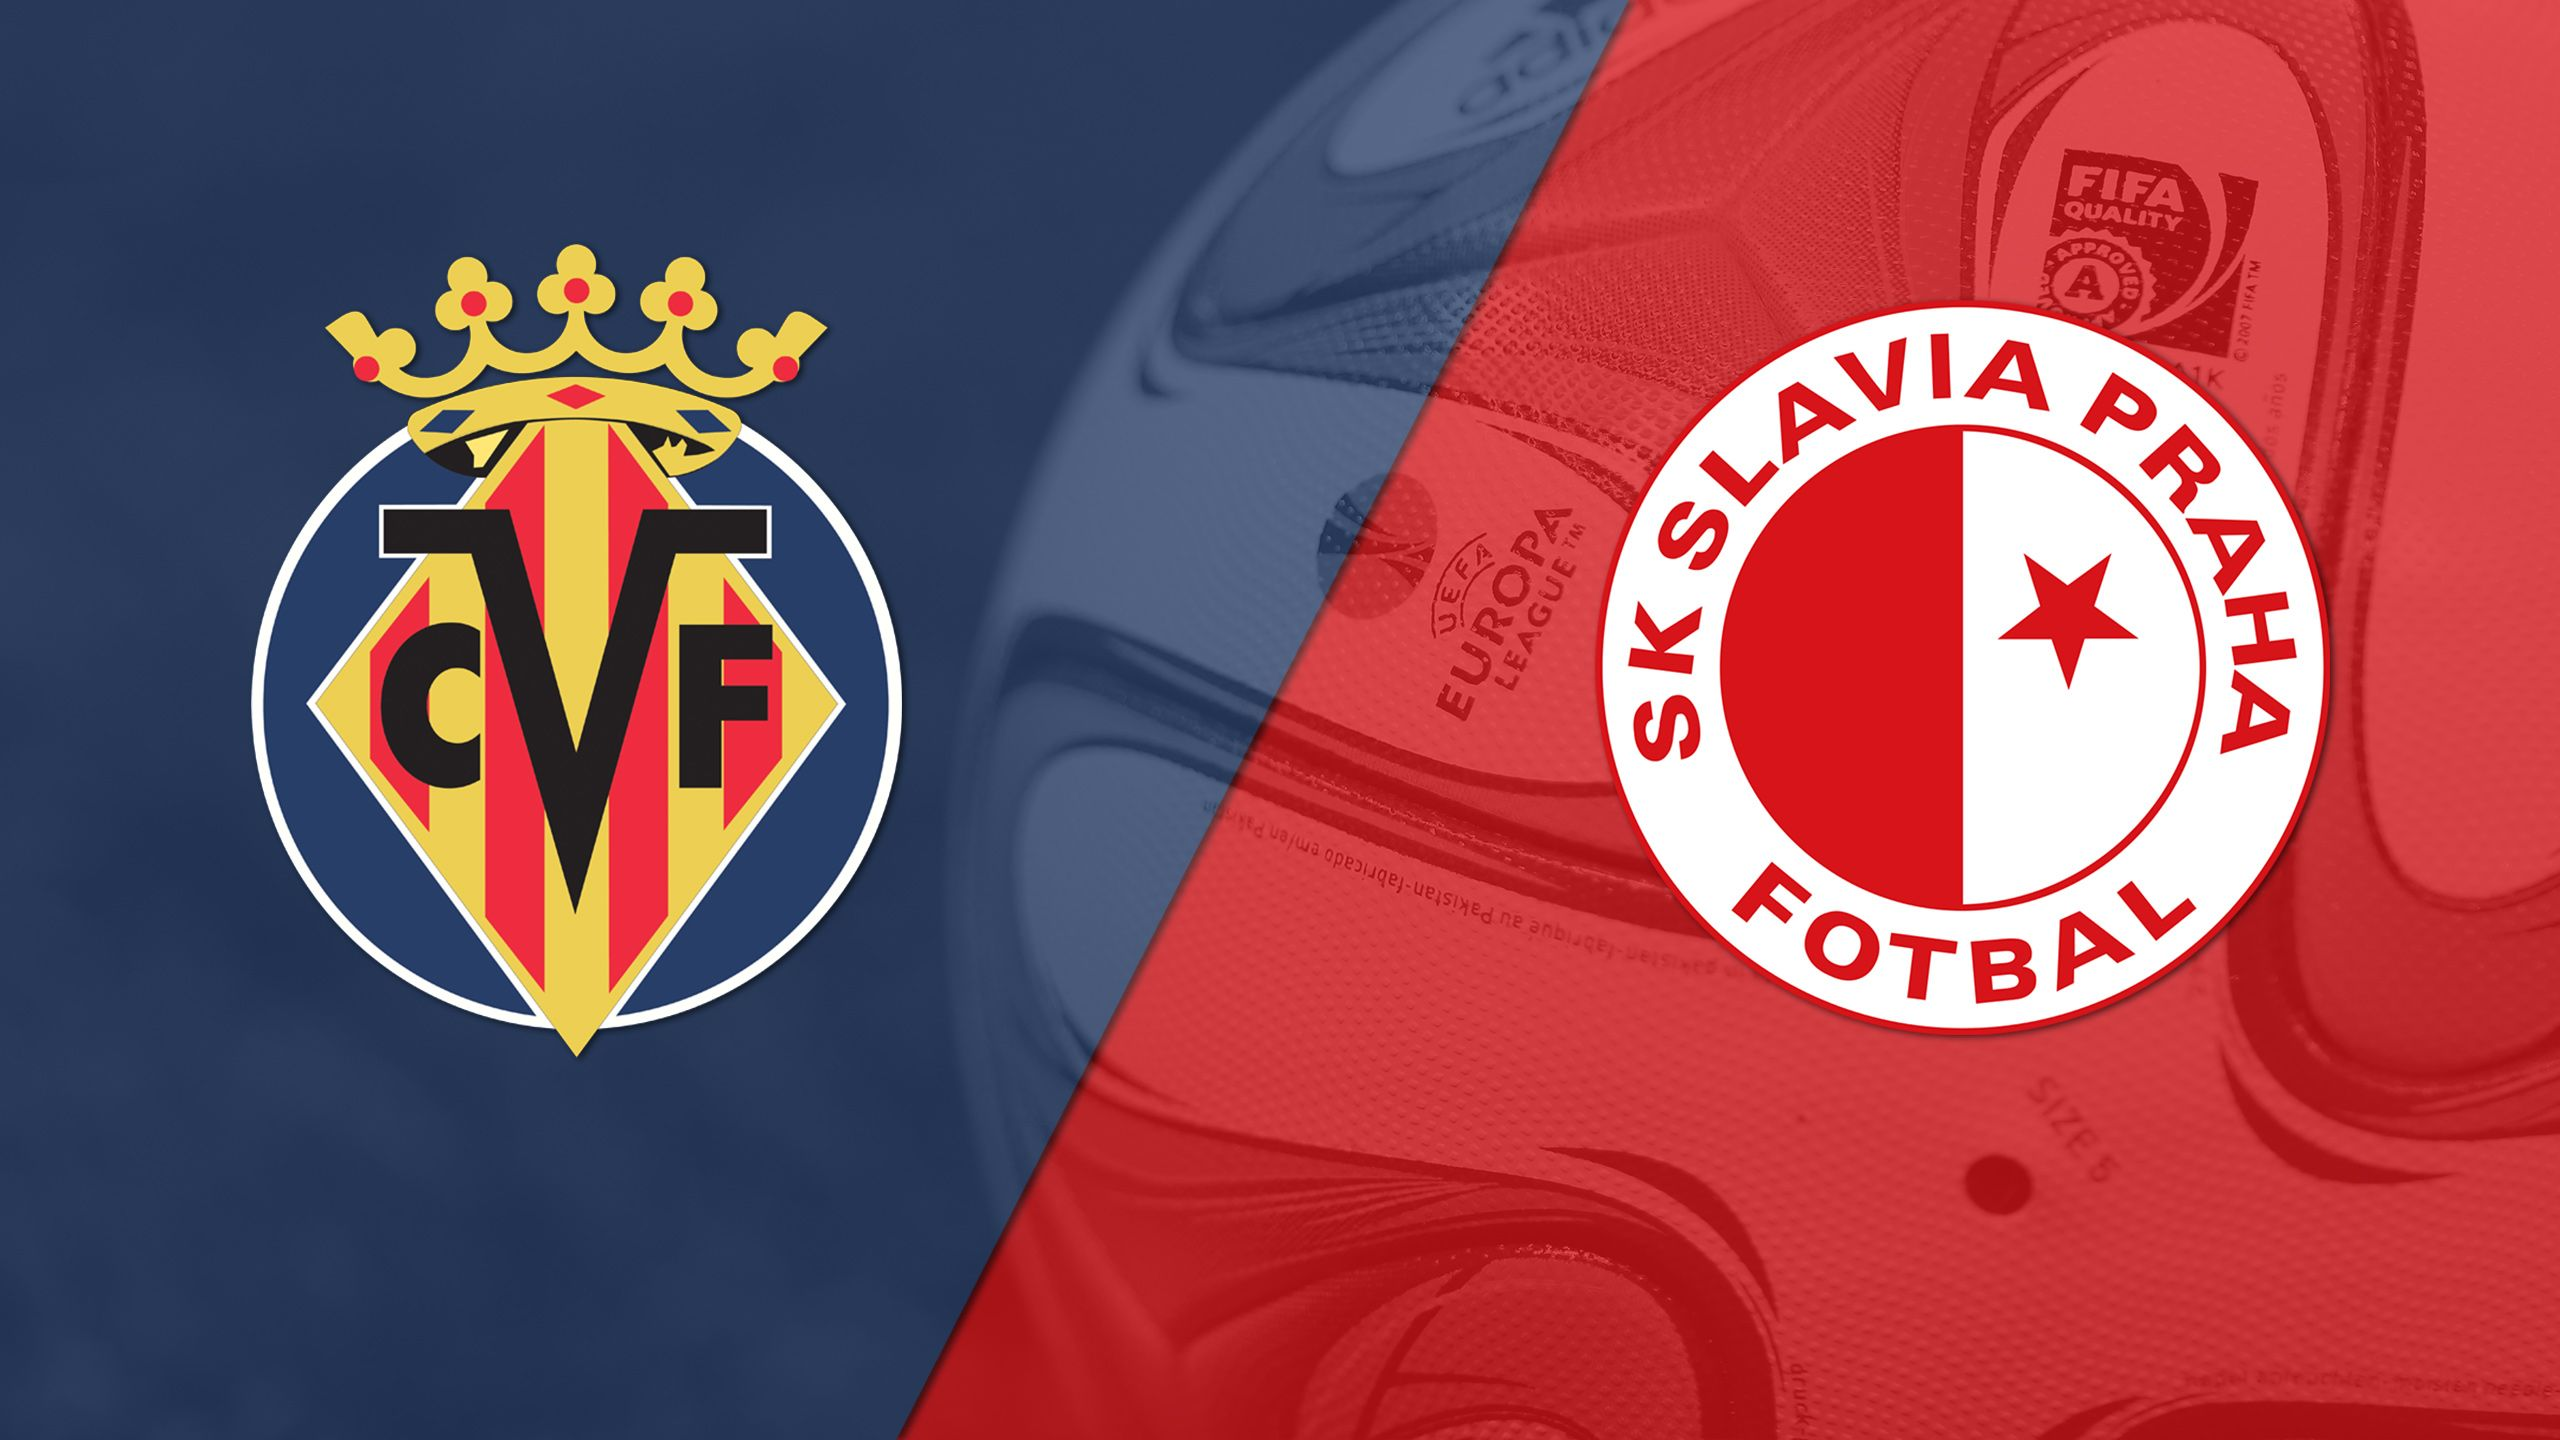 In Spanish - Villarreal vs. Sk Slavia Praha (Group Stage #3) (UEFA Europa League)